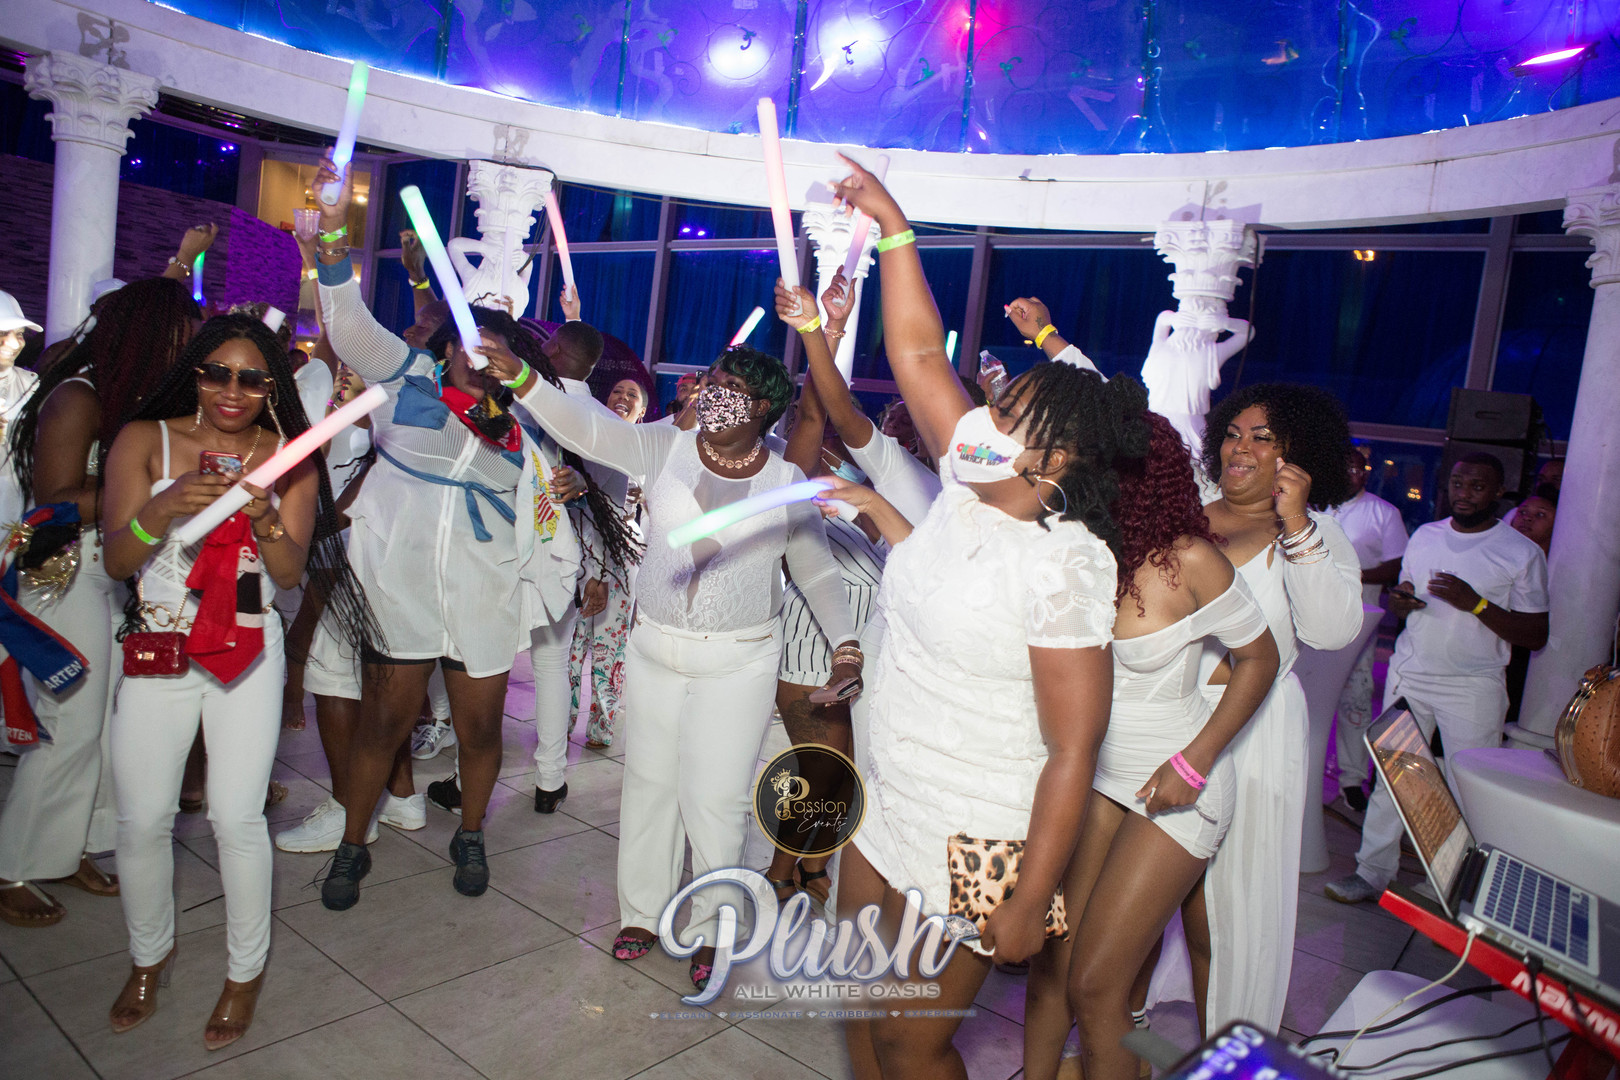 Soca_Passion-PLUSH 9267.JPG